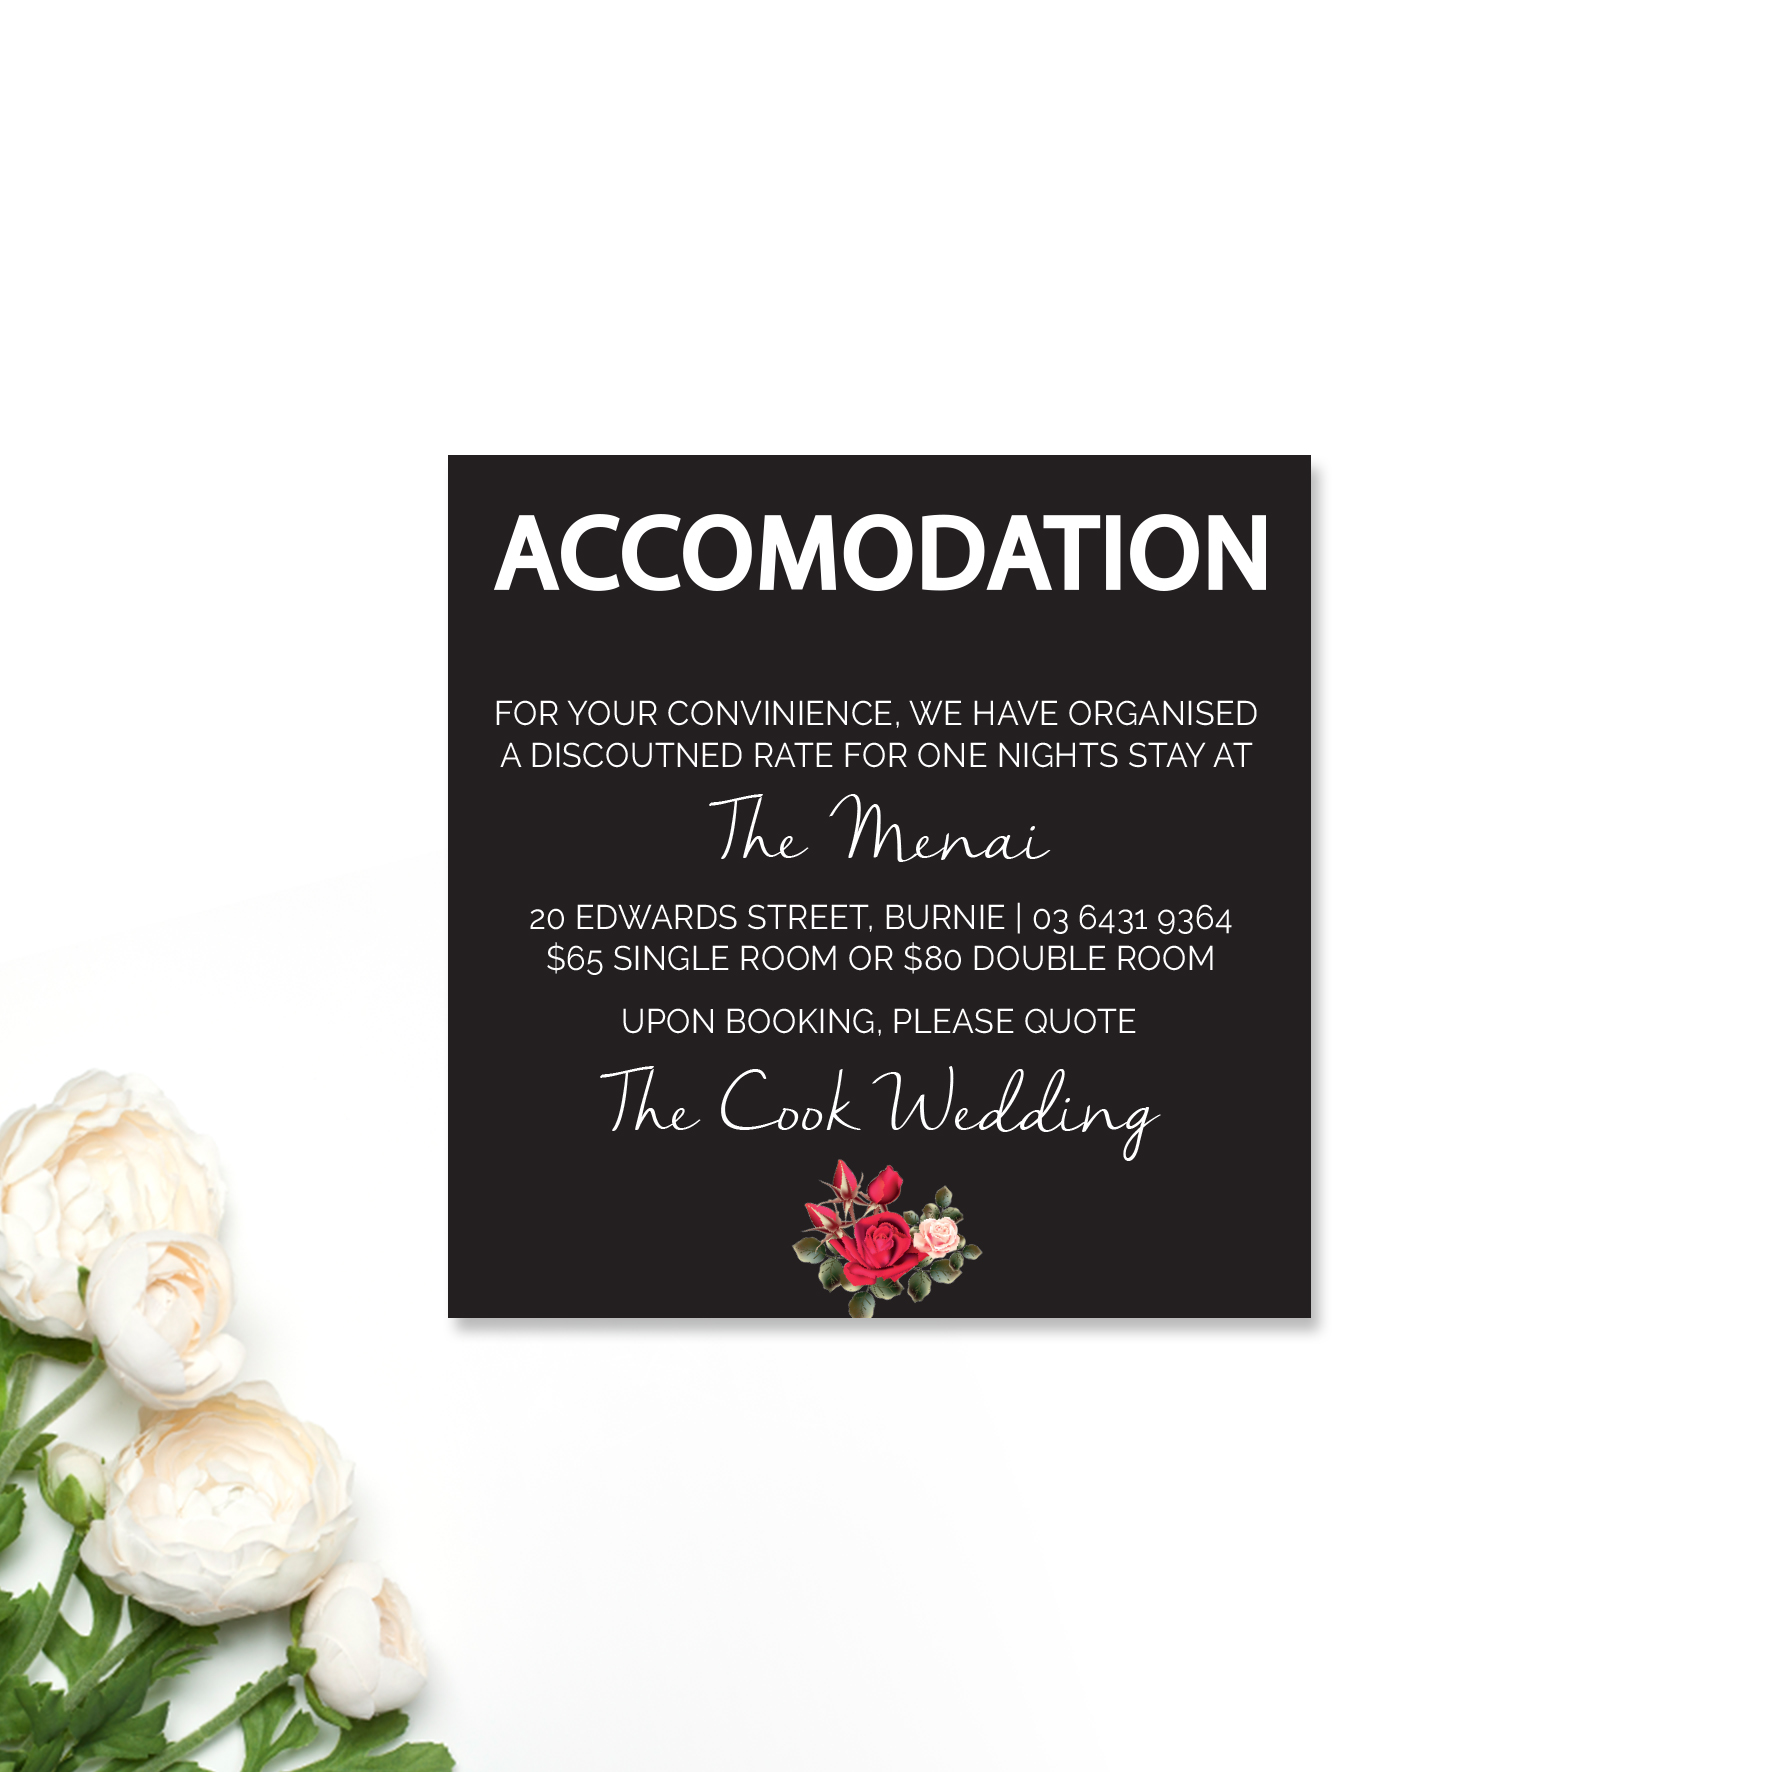 Louise + Simon Accomodation Card